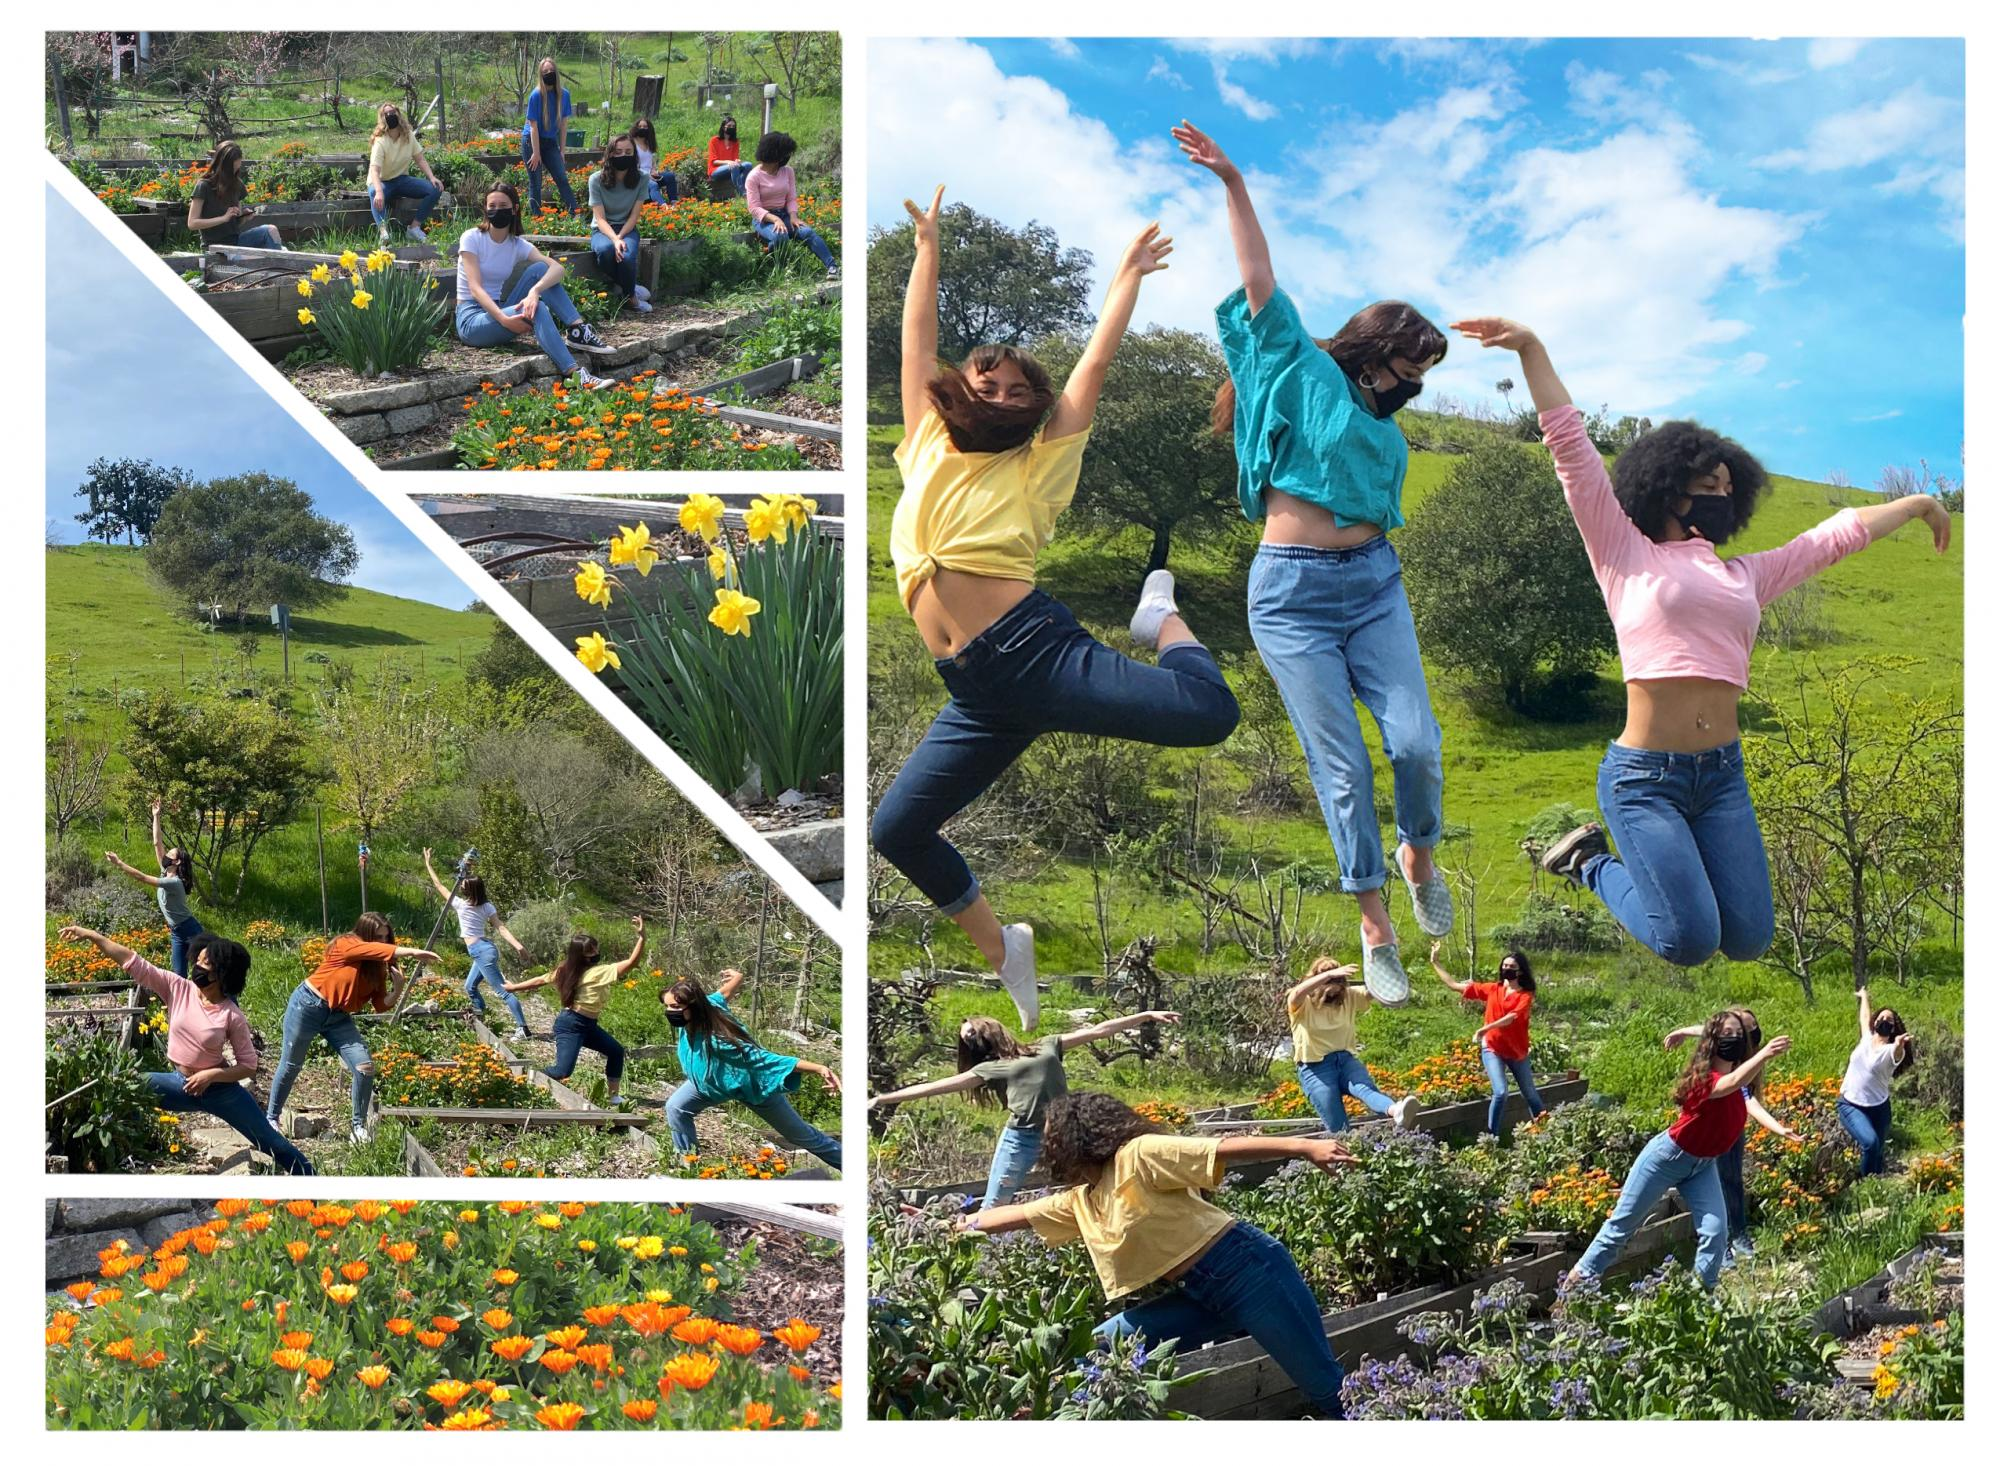 SMC Dance Company dances in the garden with flowers